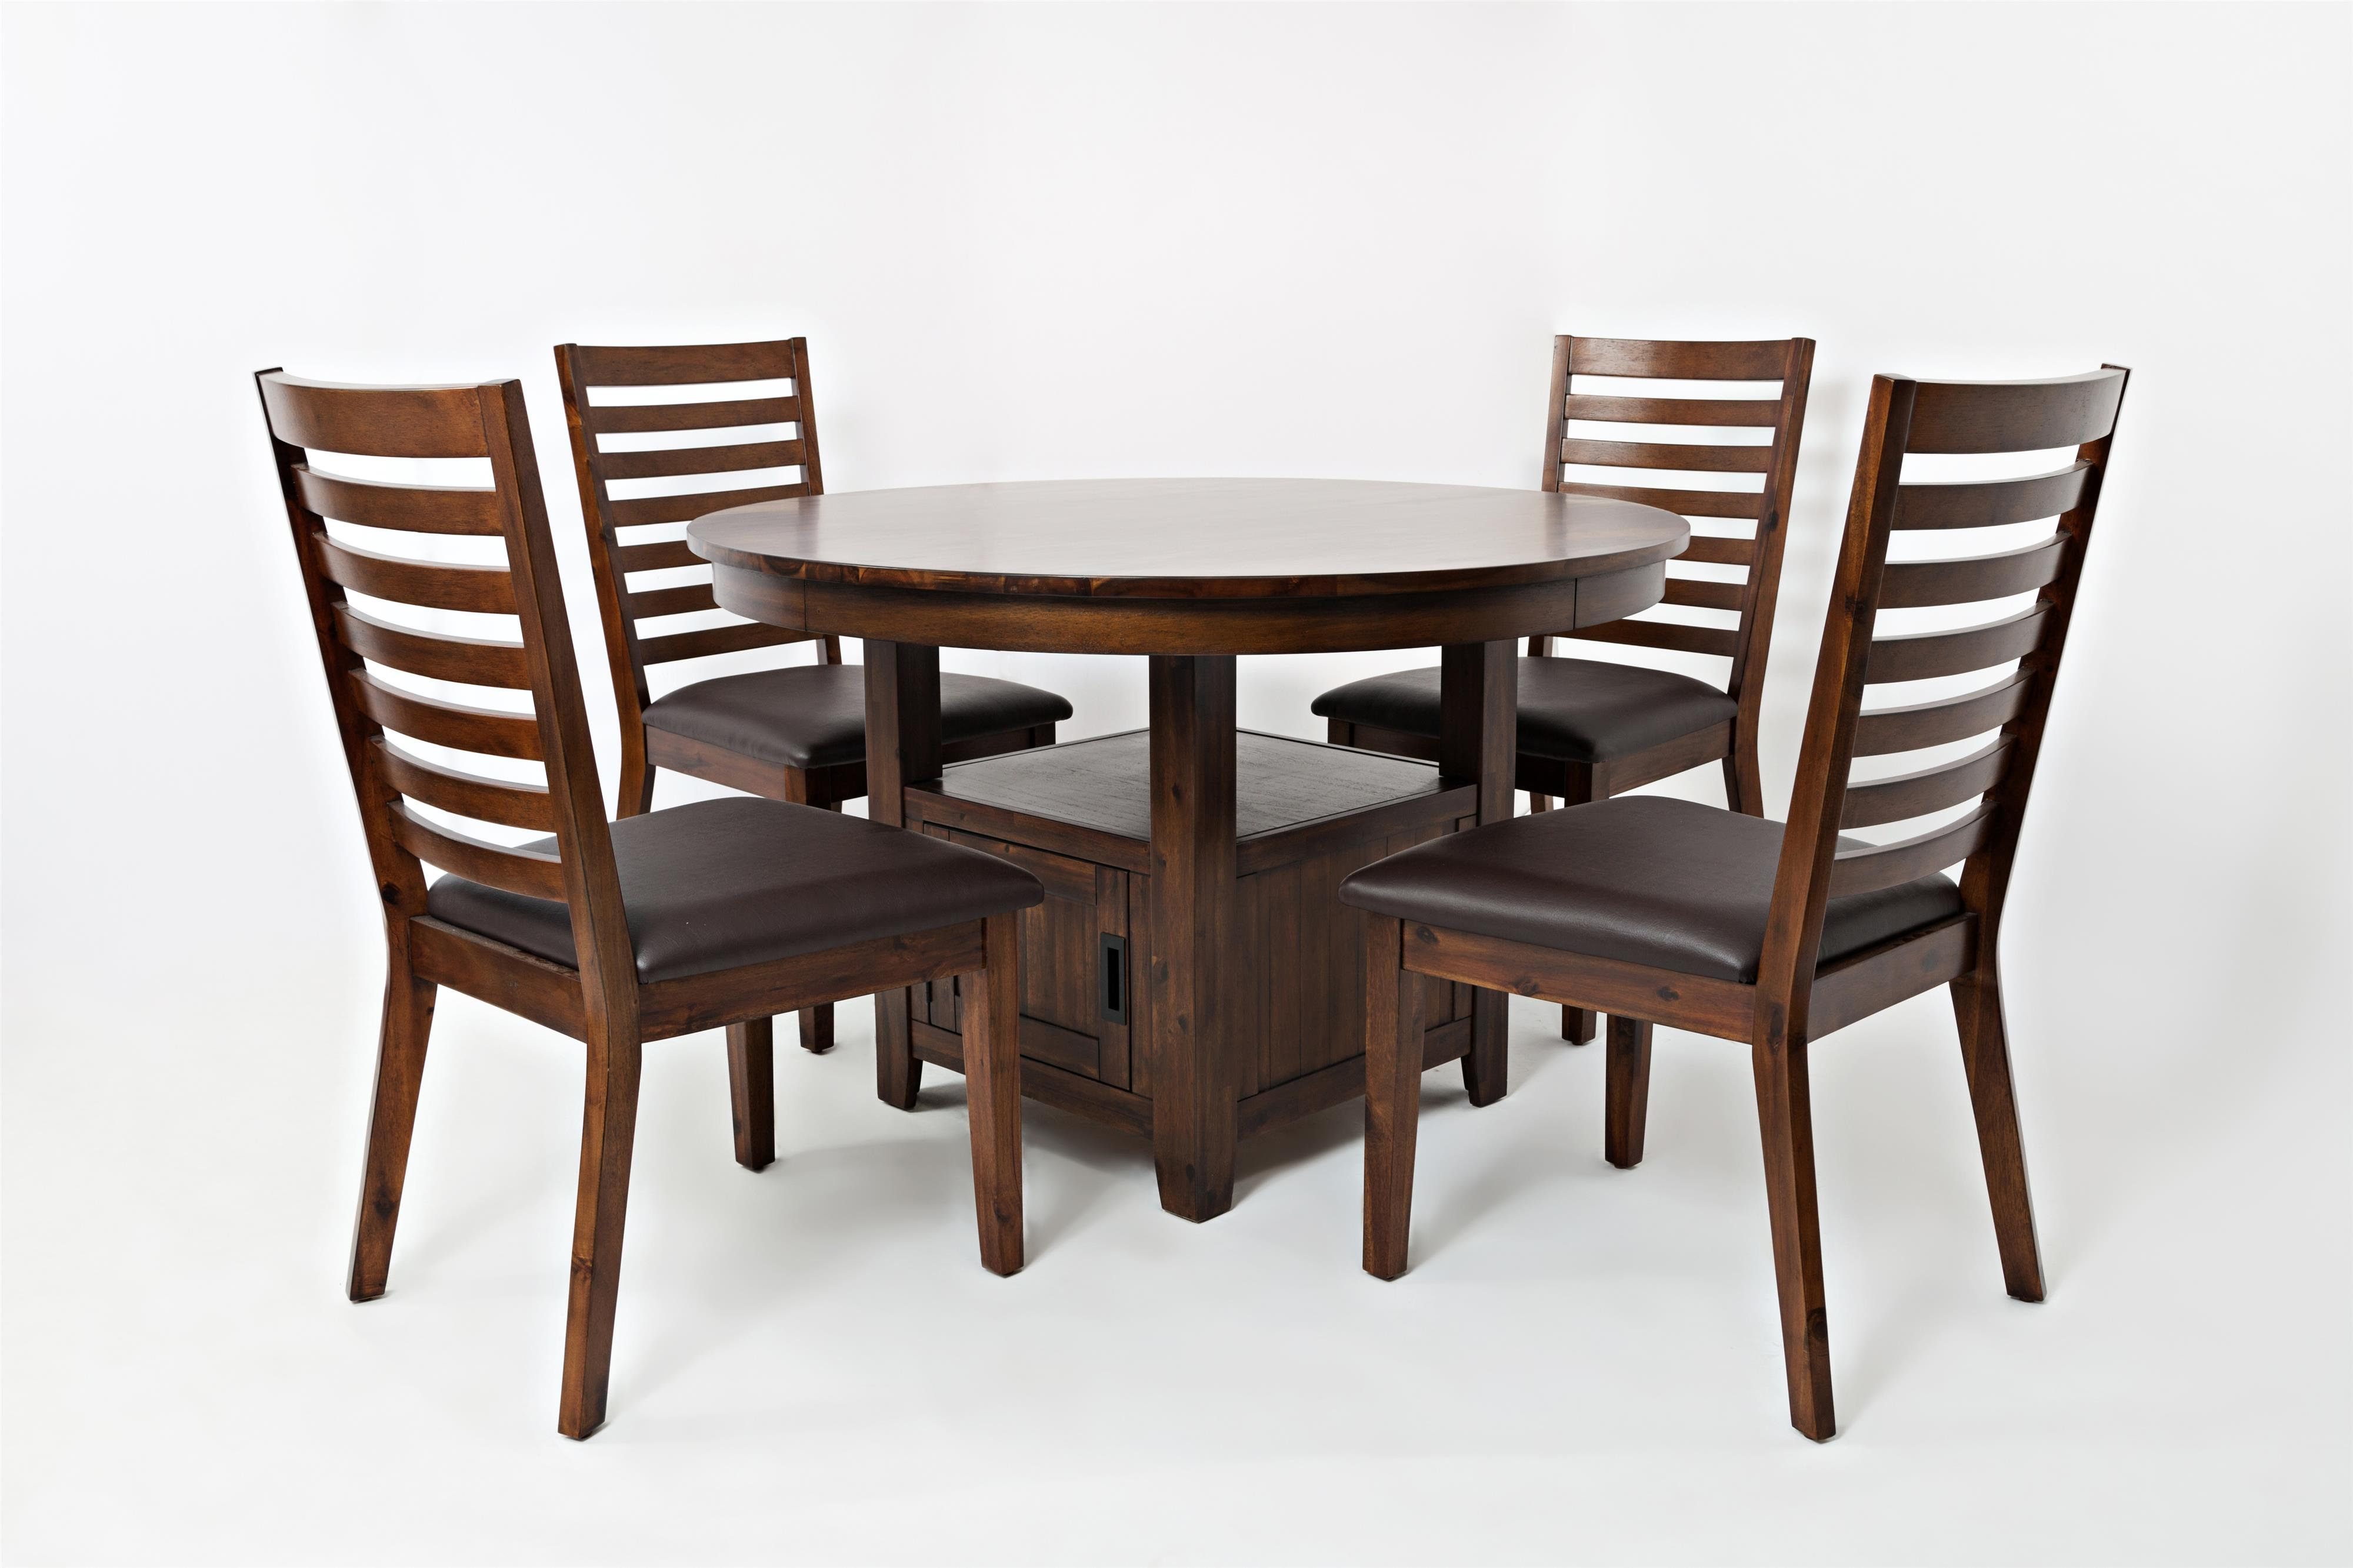 """Jofran Coolidge Corner 48"""" Round High/Low Table and Chair Set - Item Number: 1501-48B+48T+4x380KD"""